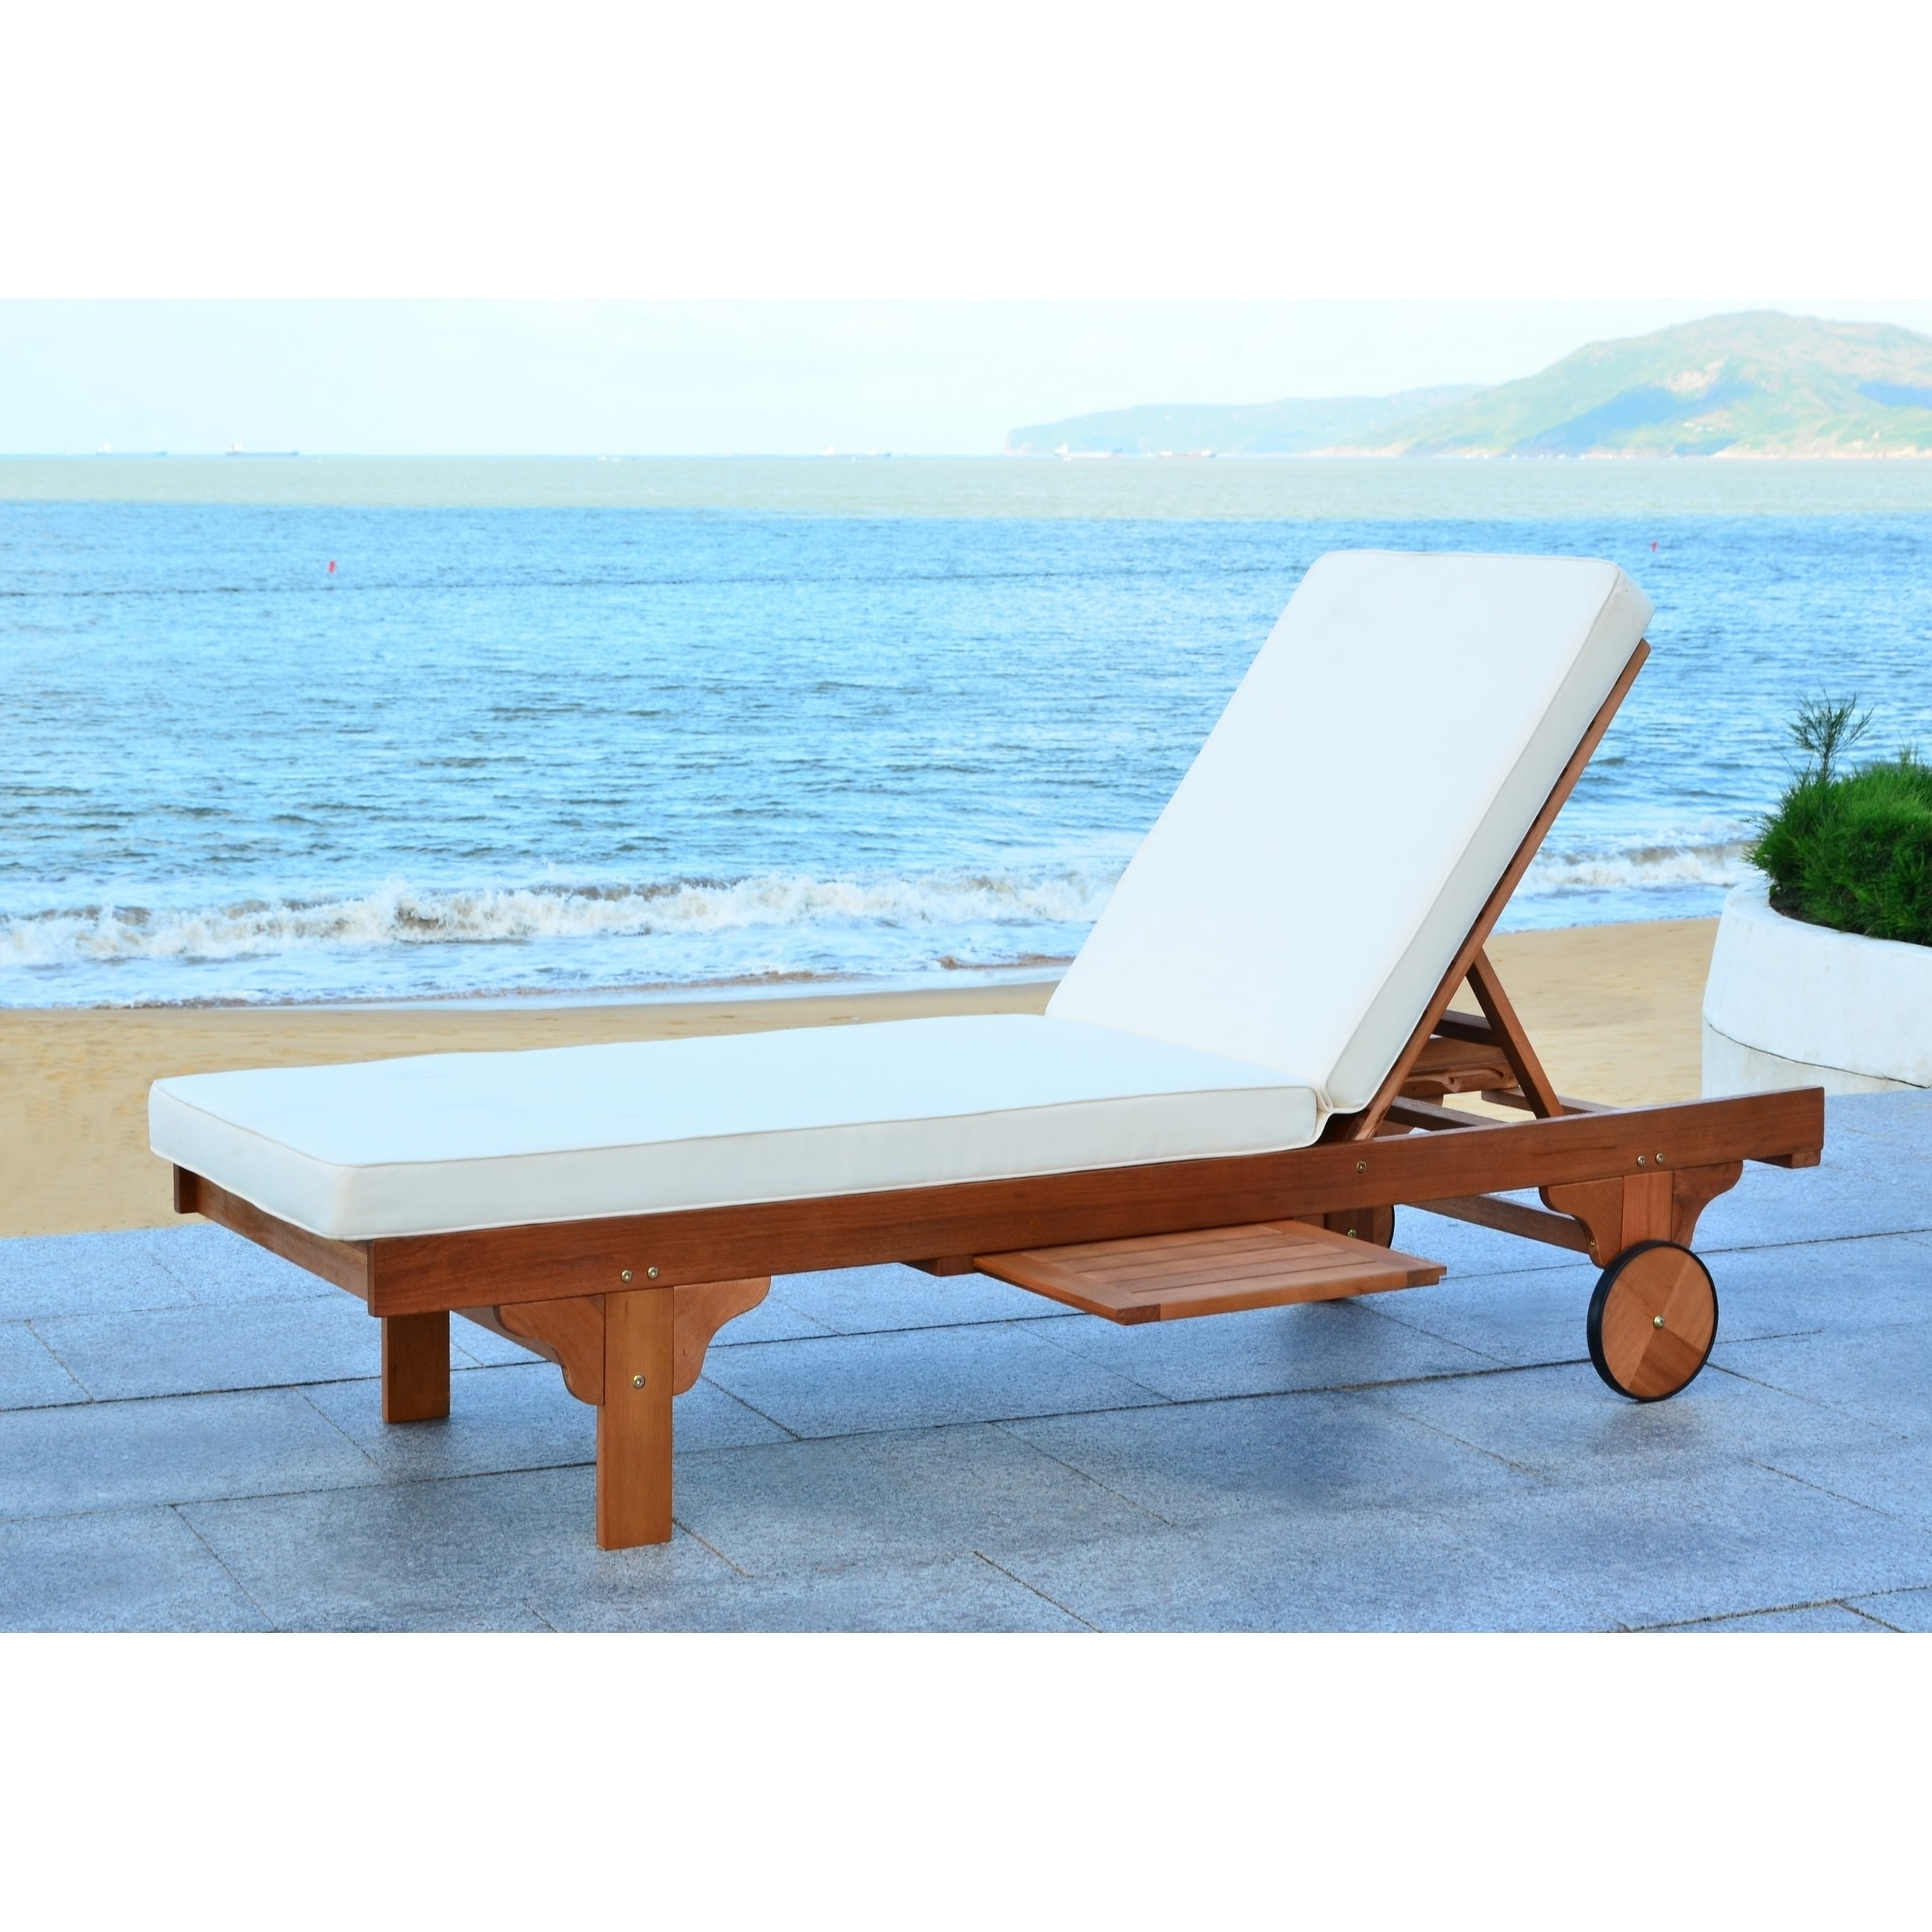 Safavieh Outdoor Living Newport Brown/ Beige Adjustable Chaise Regarding 2018 Newport Chaise Lounge Chairs (View 11 of 15)